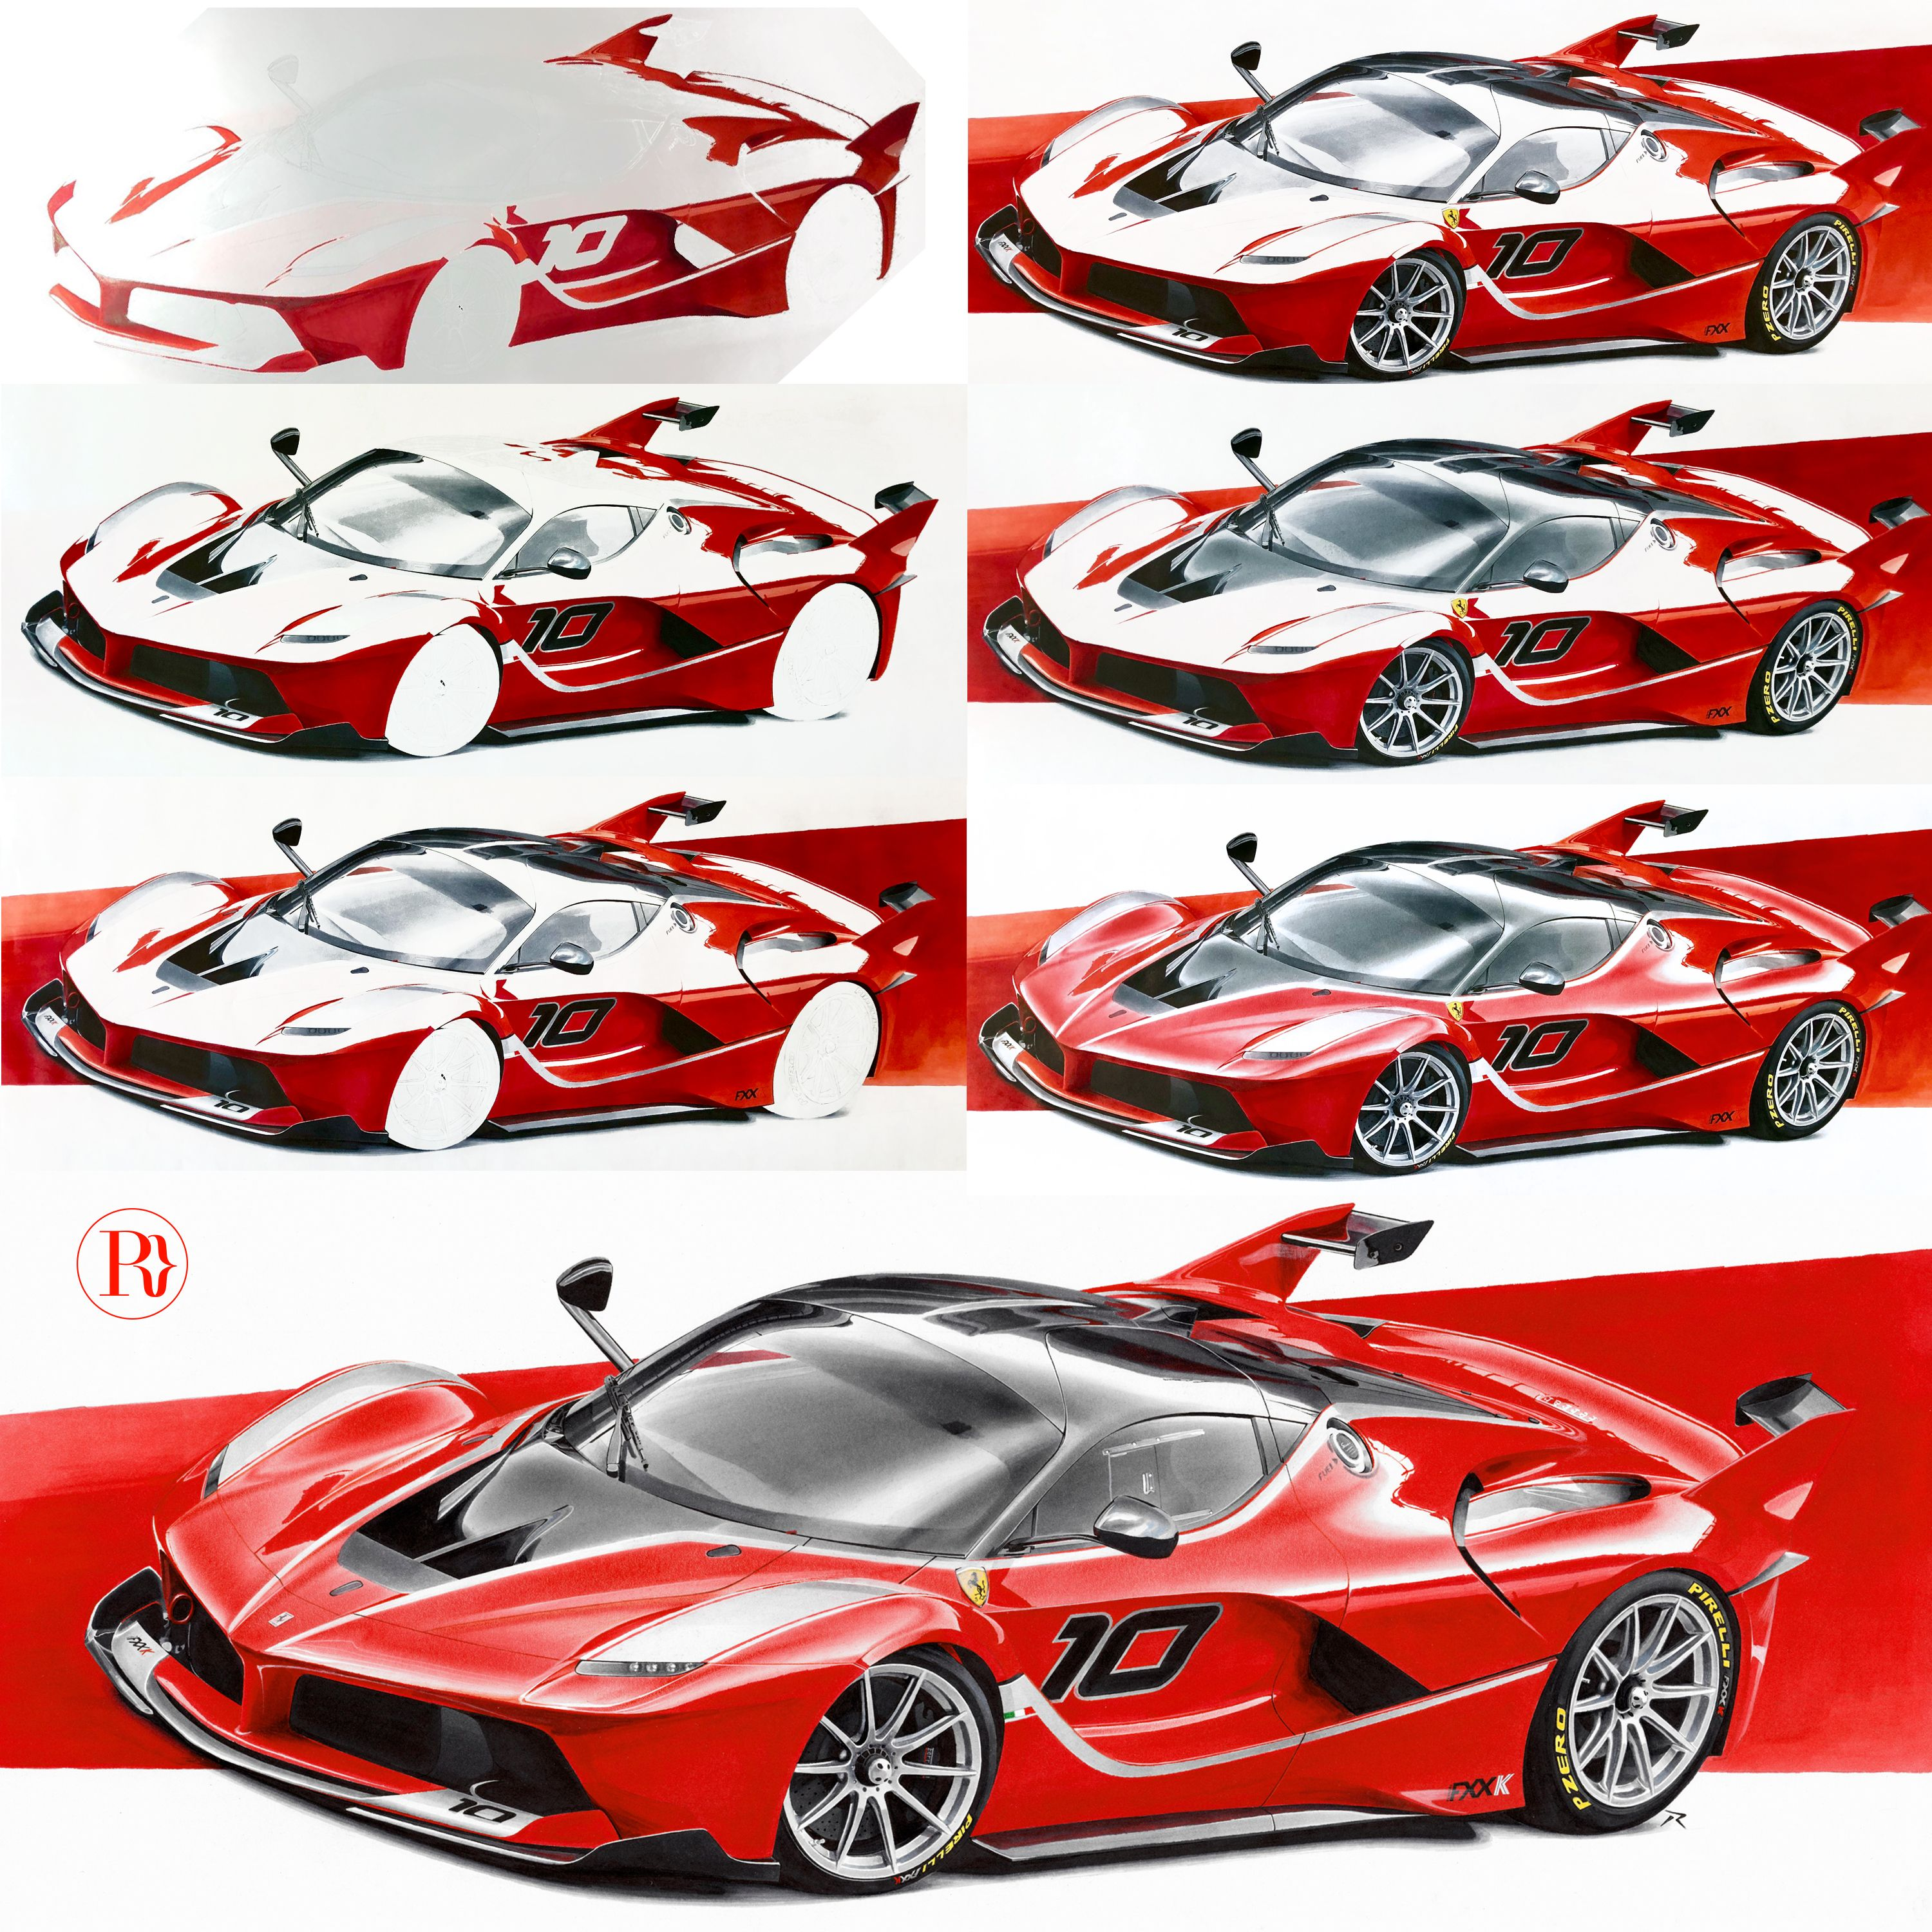 niagara unlimited make catharines velocit parts on an inquiry htm in ferrari dealership used cars st